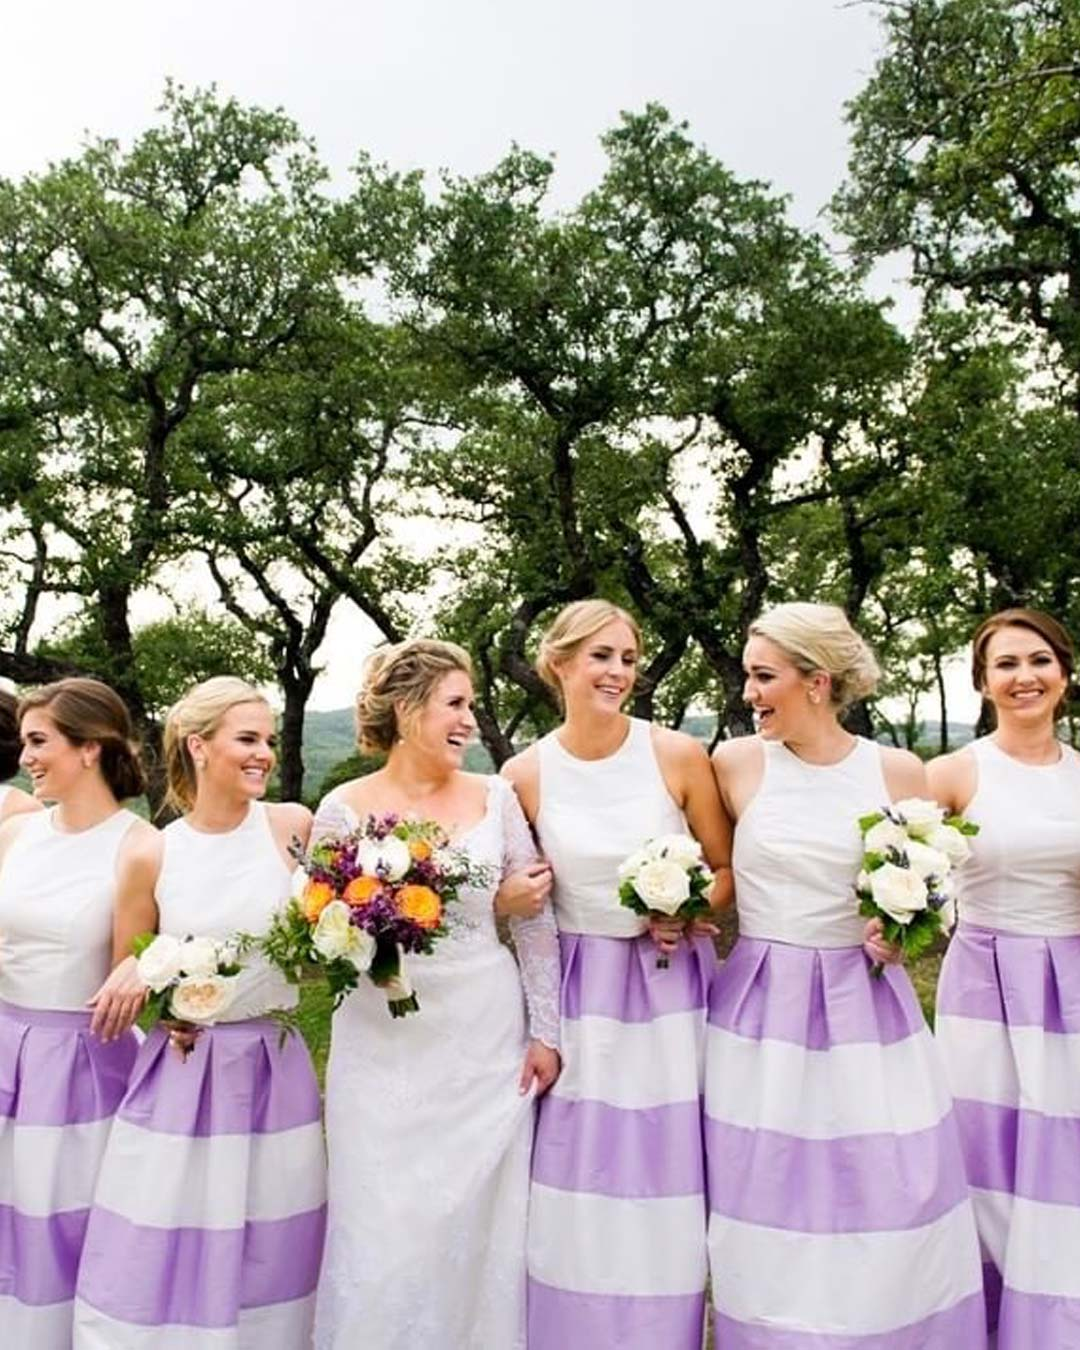 lilac wedding colors bride bridesmaids